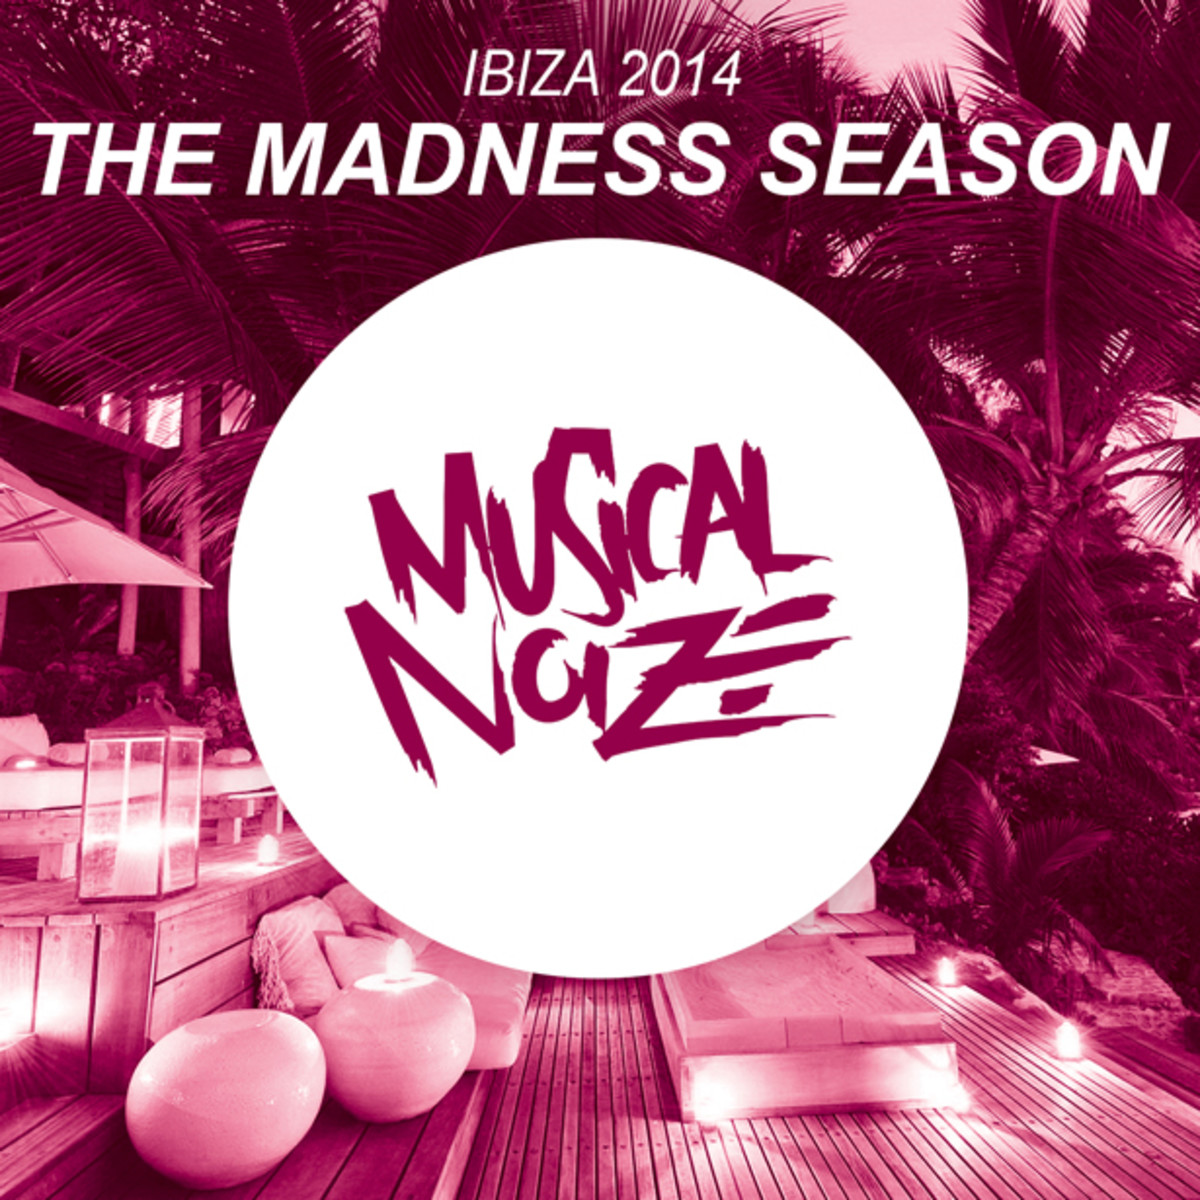 Spotlight: The Madness Season - Musical Noize's Ibiza 2014 Compilation Out Now